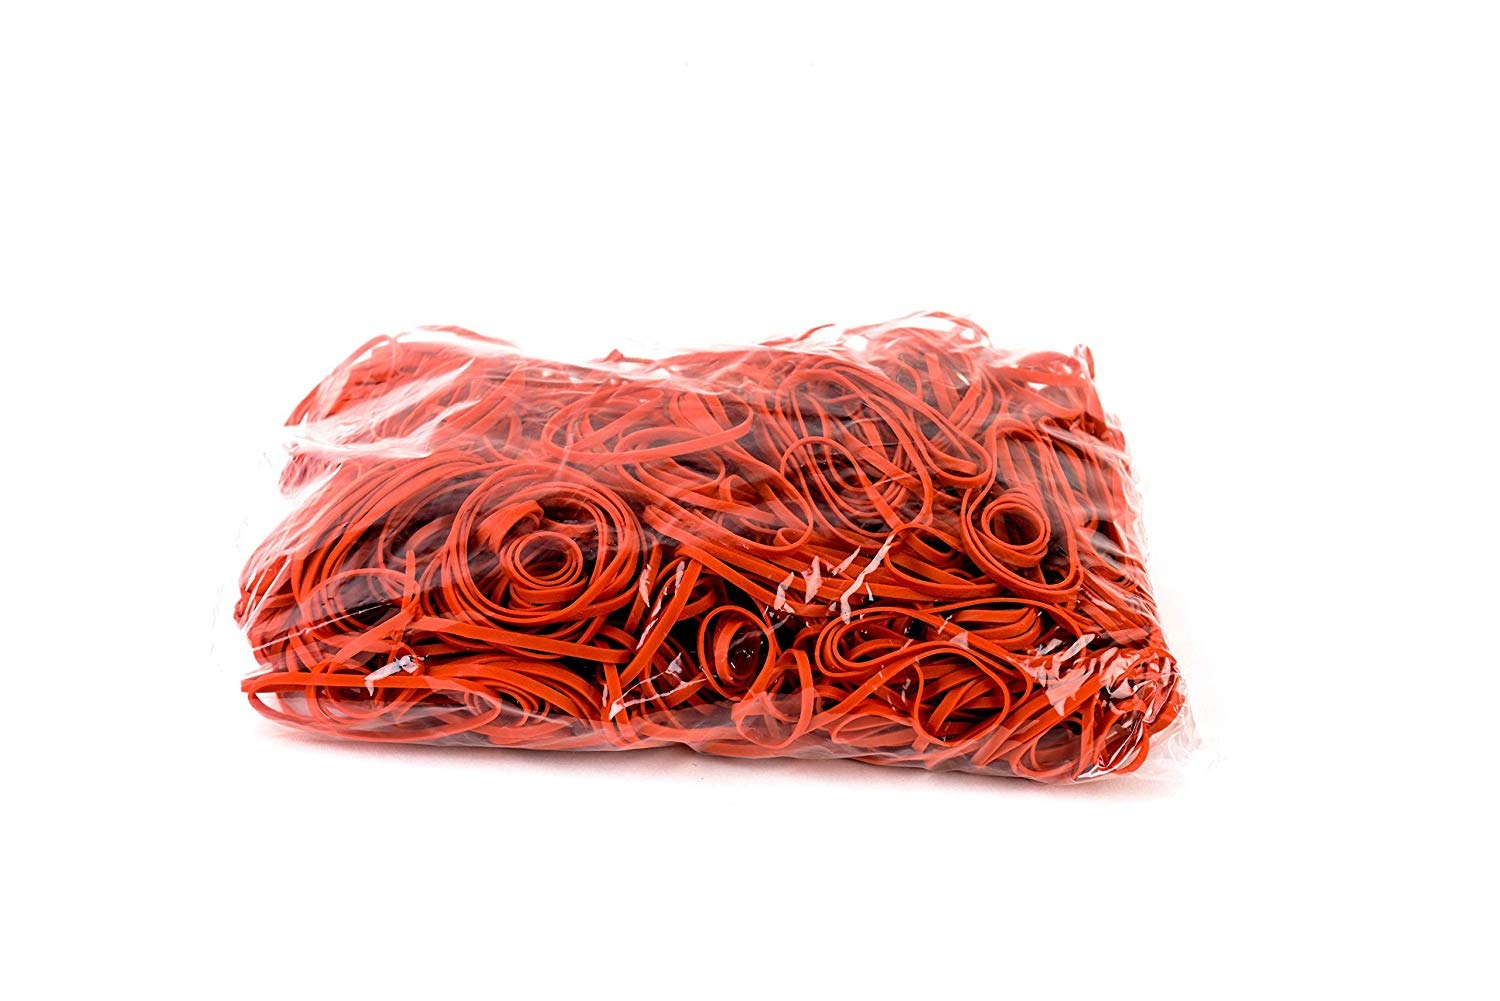 Large Rubber Bands RED Size #62 (2-1/2 x 1/4 inches) 1800pcs (1 Pound per Box)